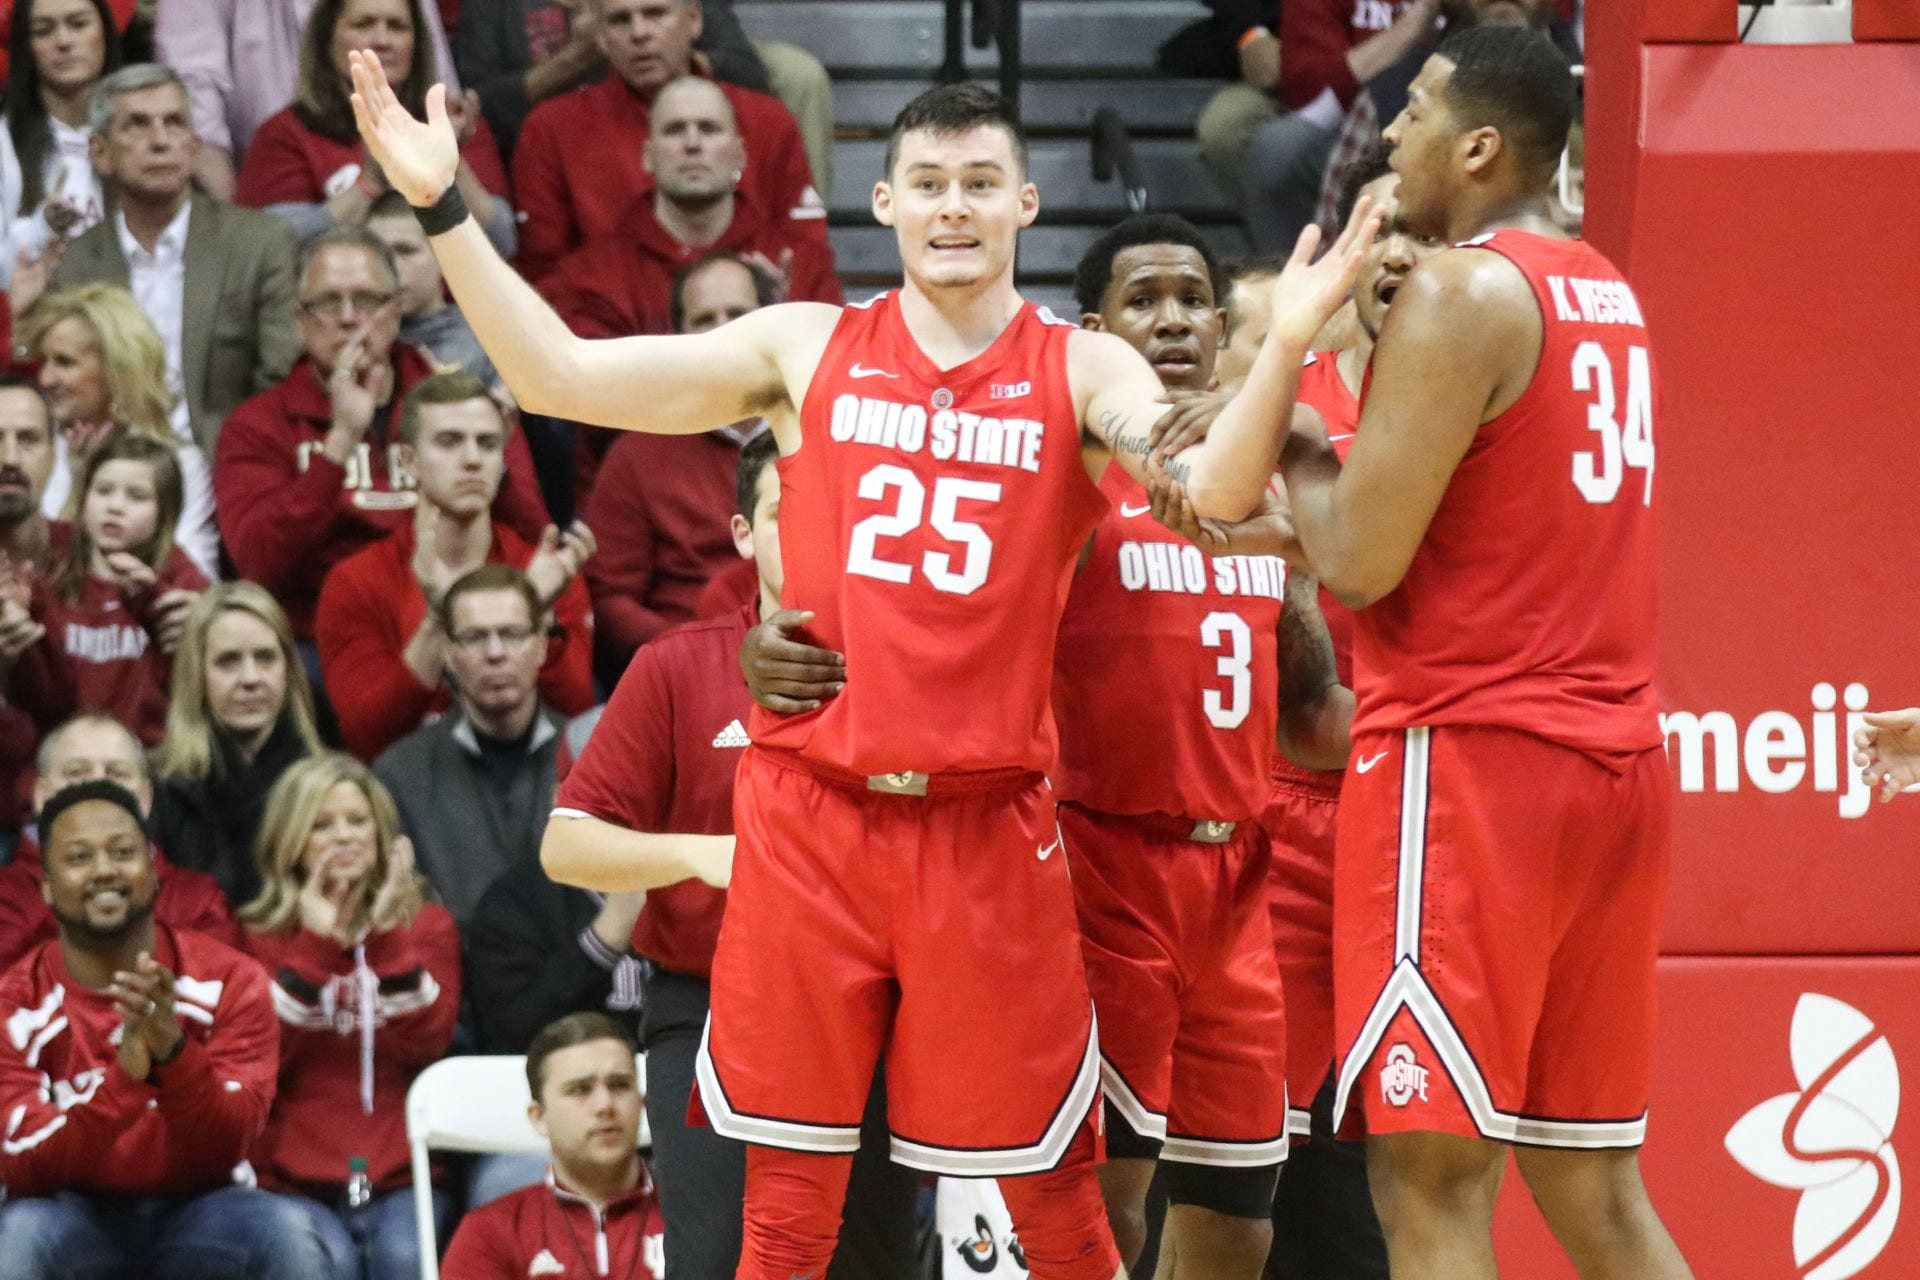 8f77739dfc30 Ohio State sophomore forward Kyle Young (25) questions the referees after  he was called for a foul in the second half of the game against Indiana on  Feb.